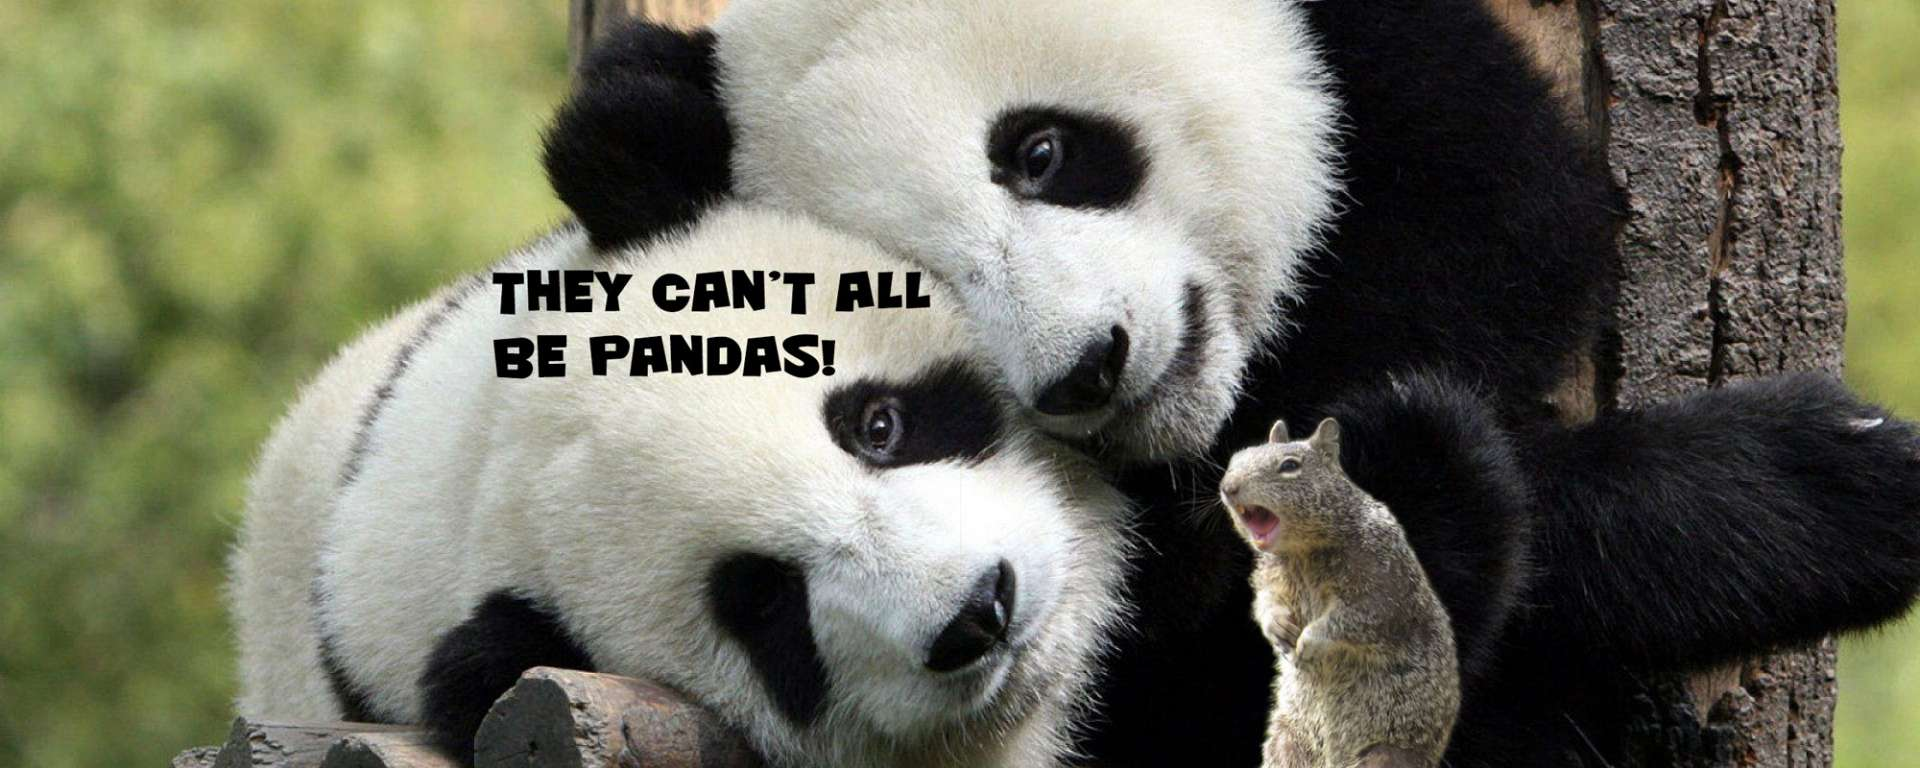 They Can't All Be Pandas